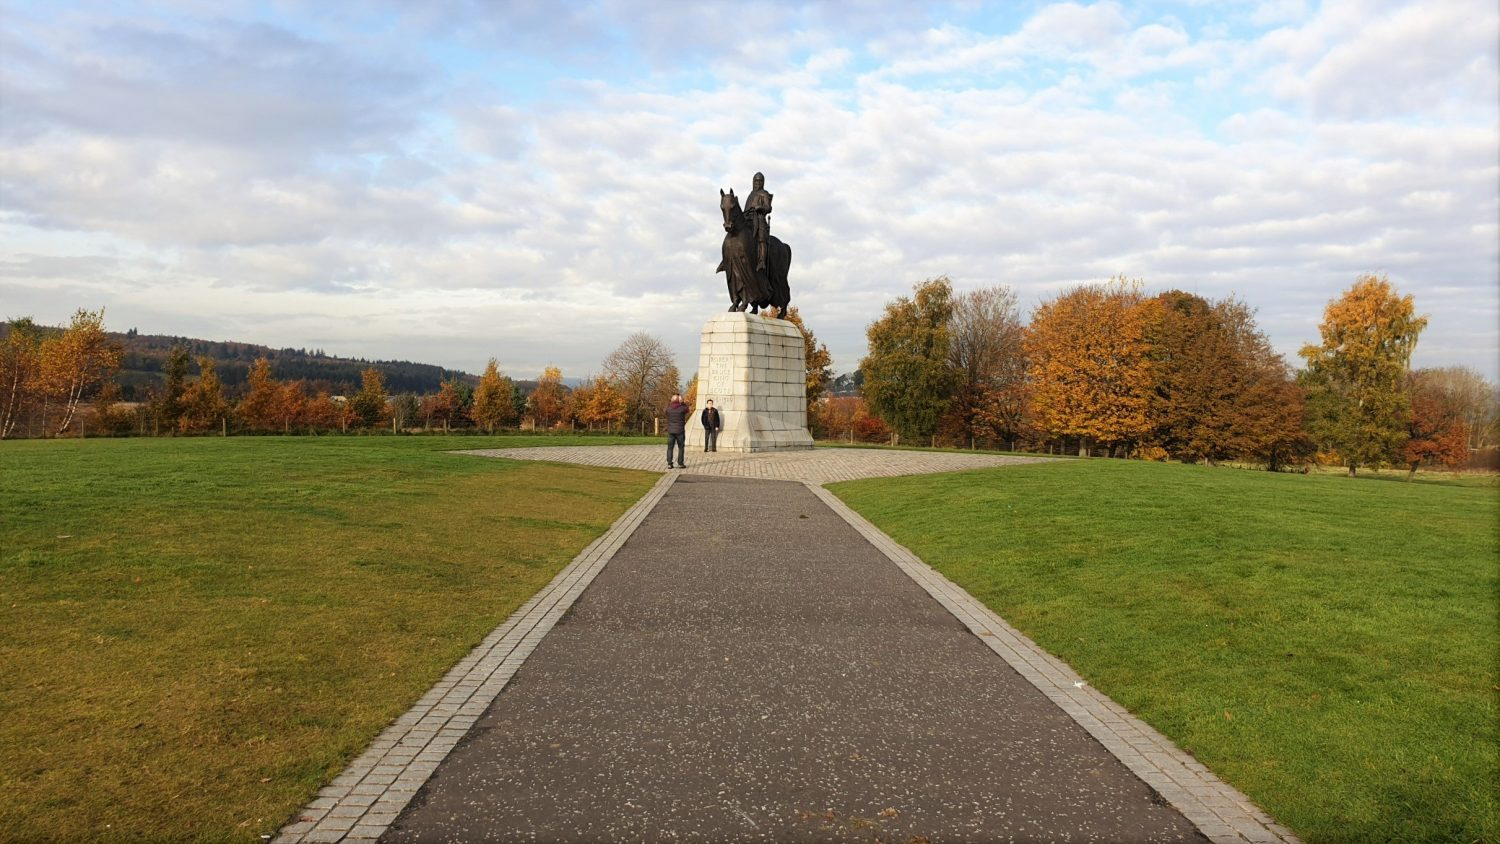 l monumento a Robert the Bruce